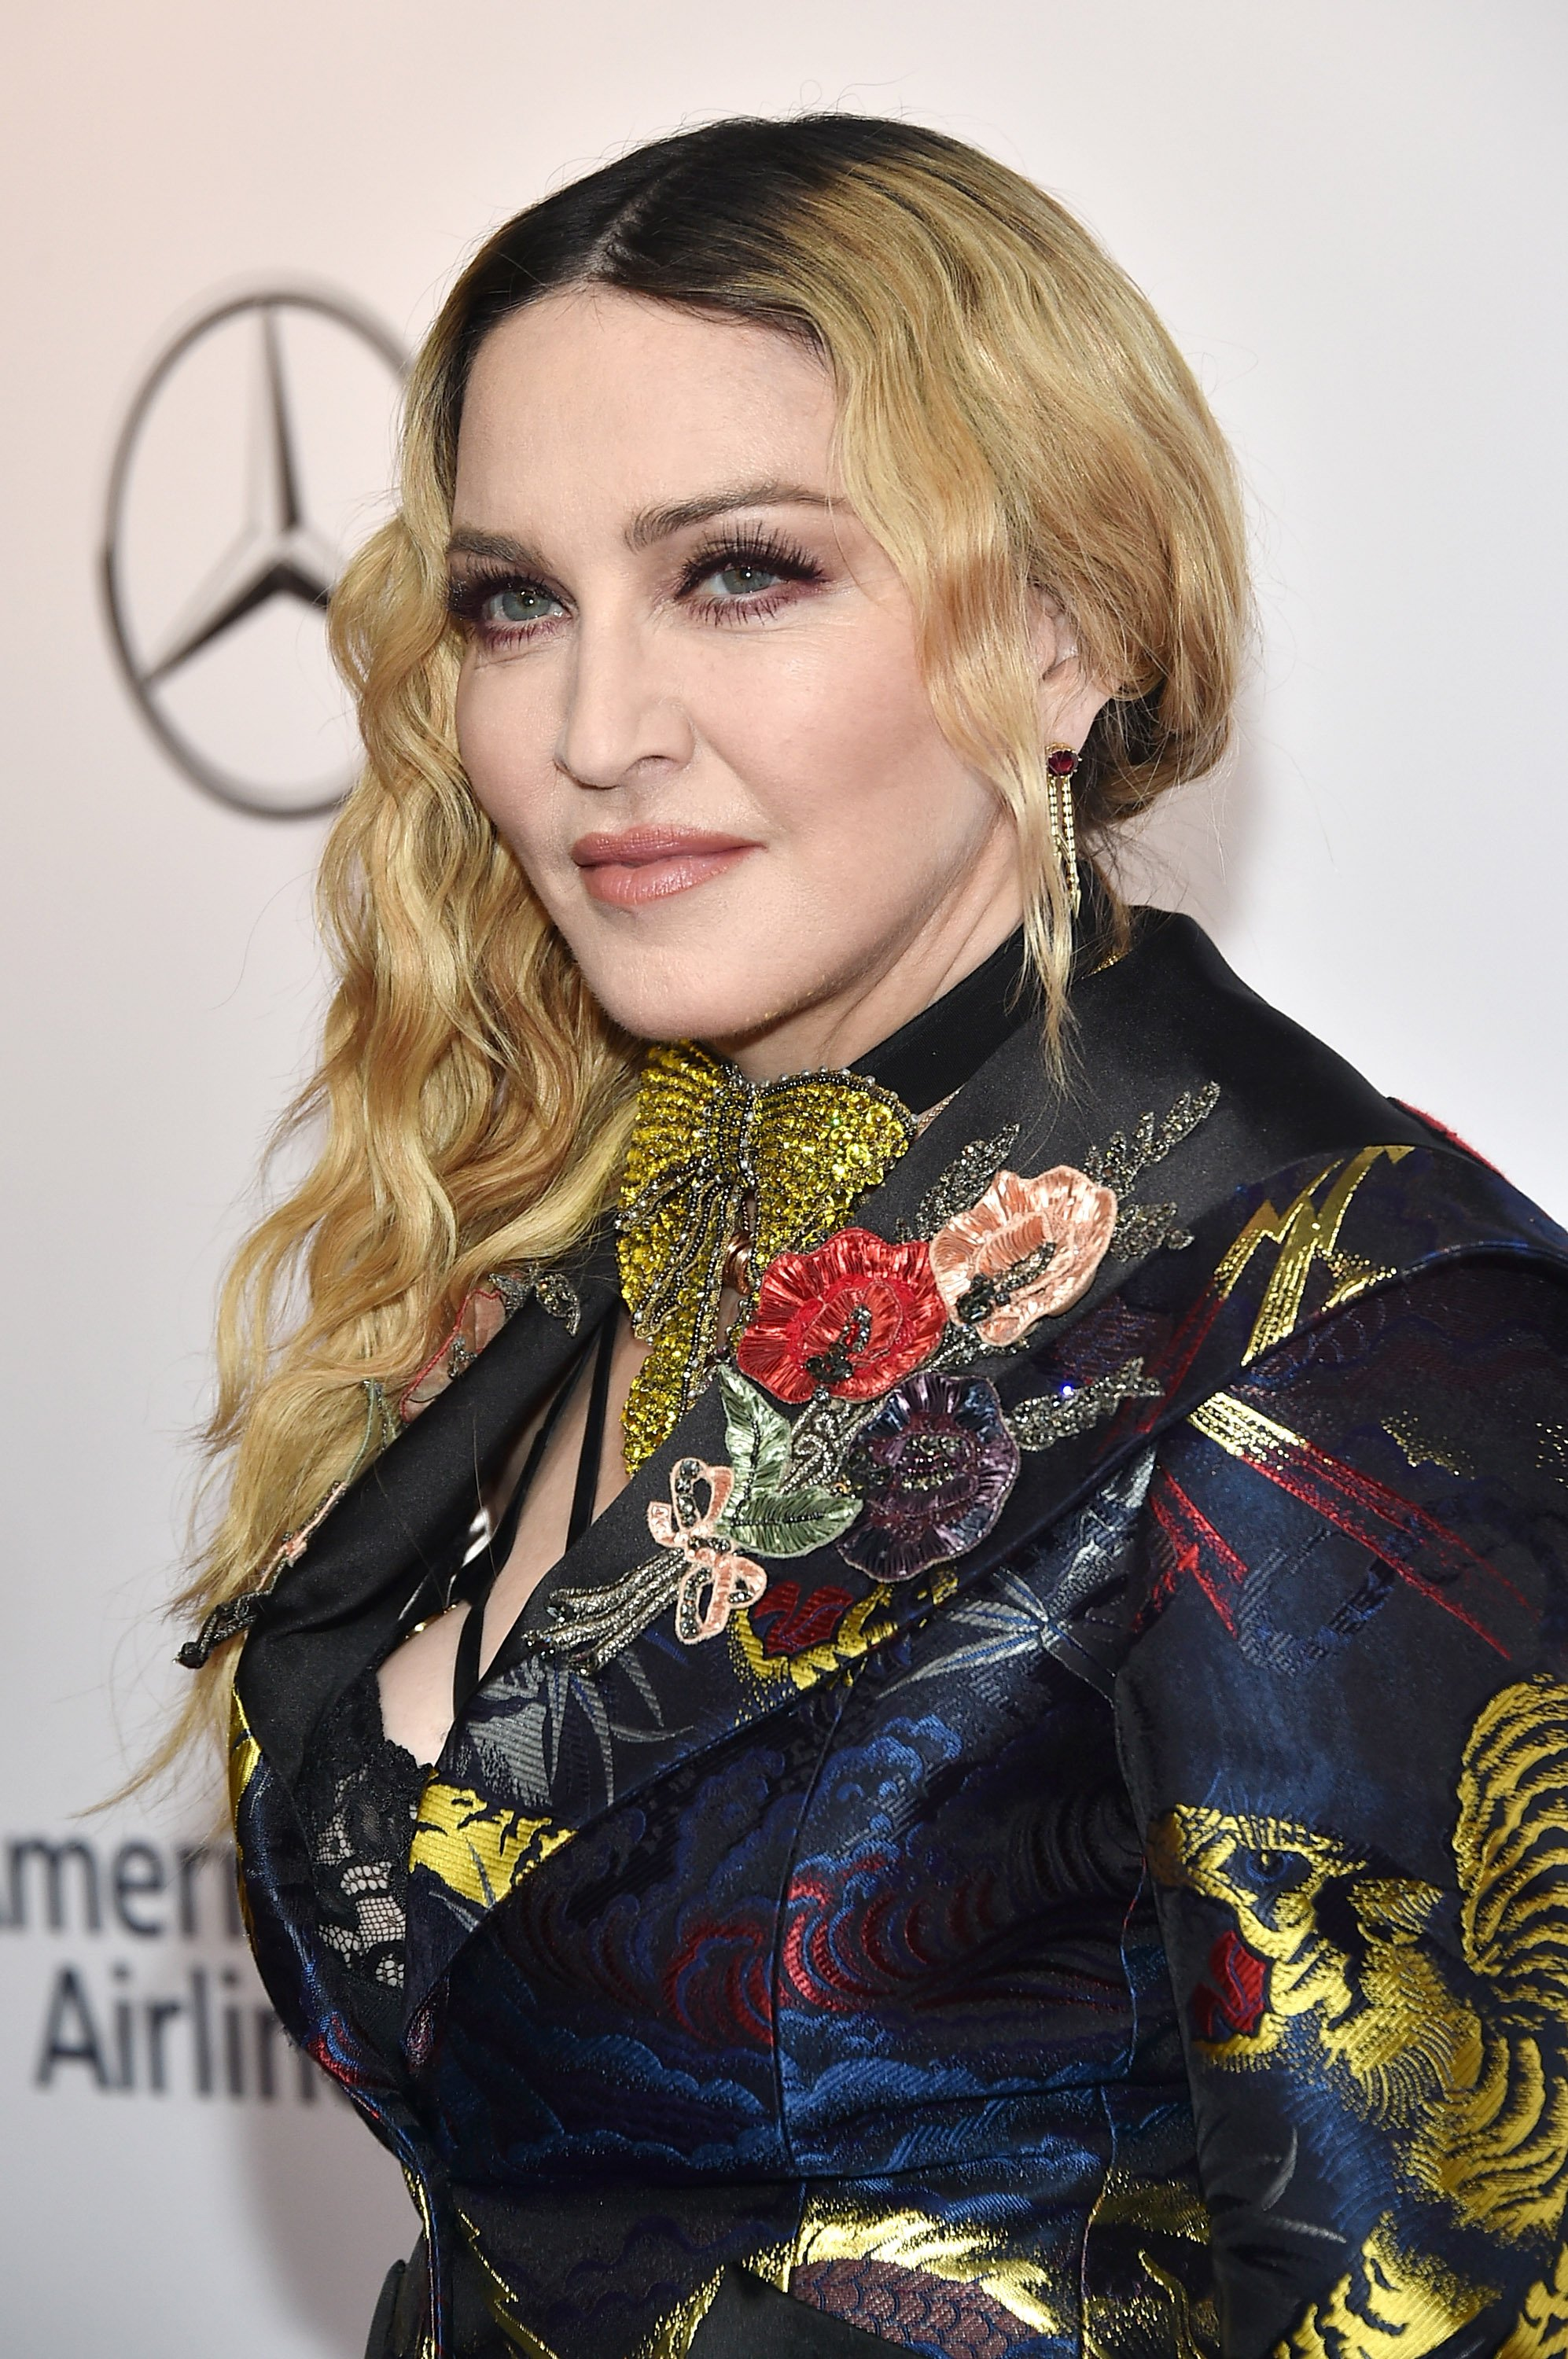 Madonna attends the Billboard Women in Music 2016 event on December 9, 2016 in New York City